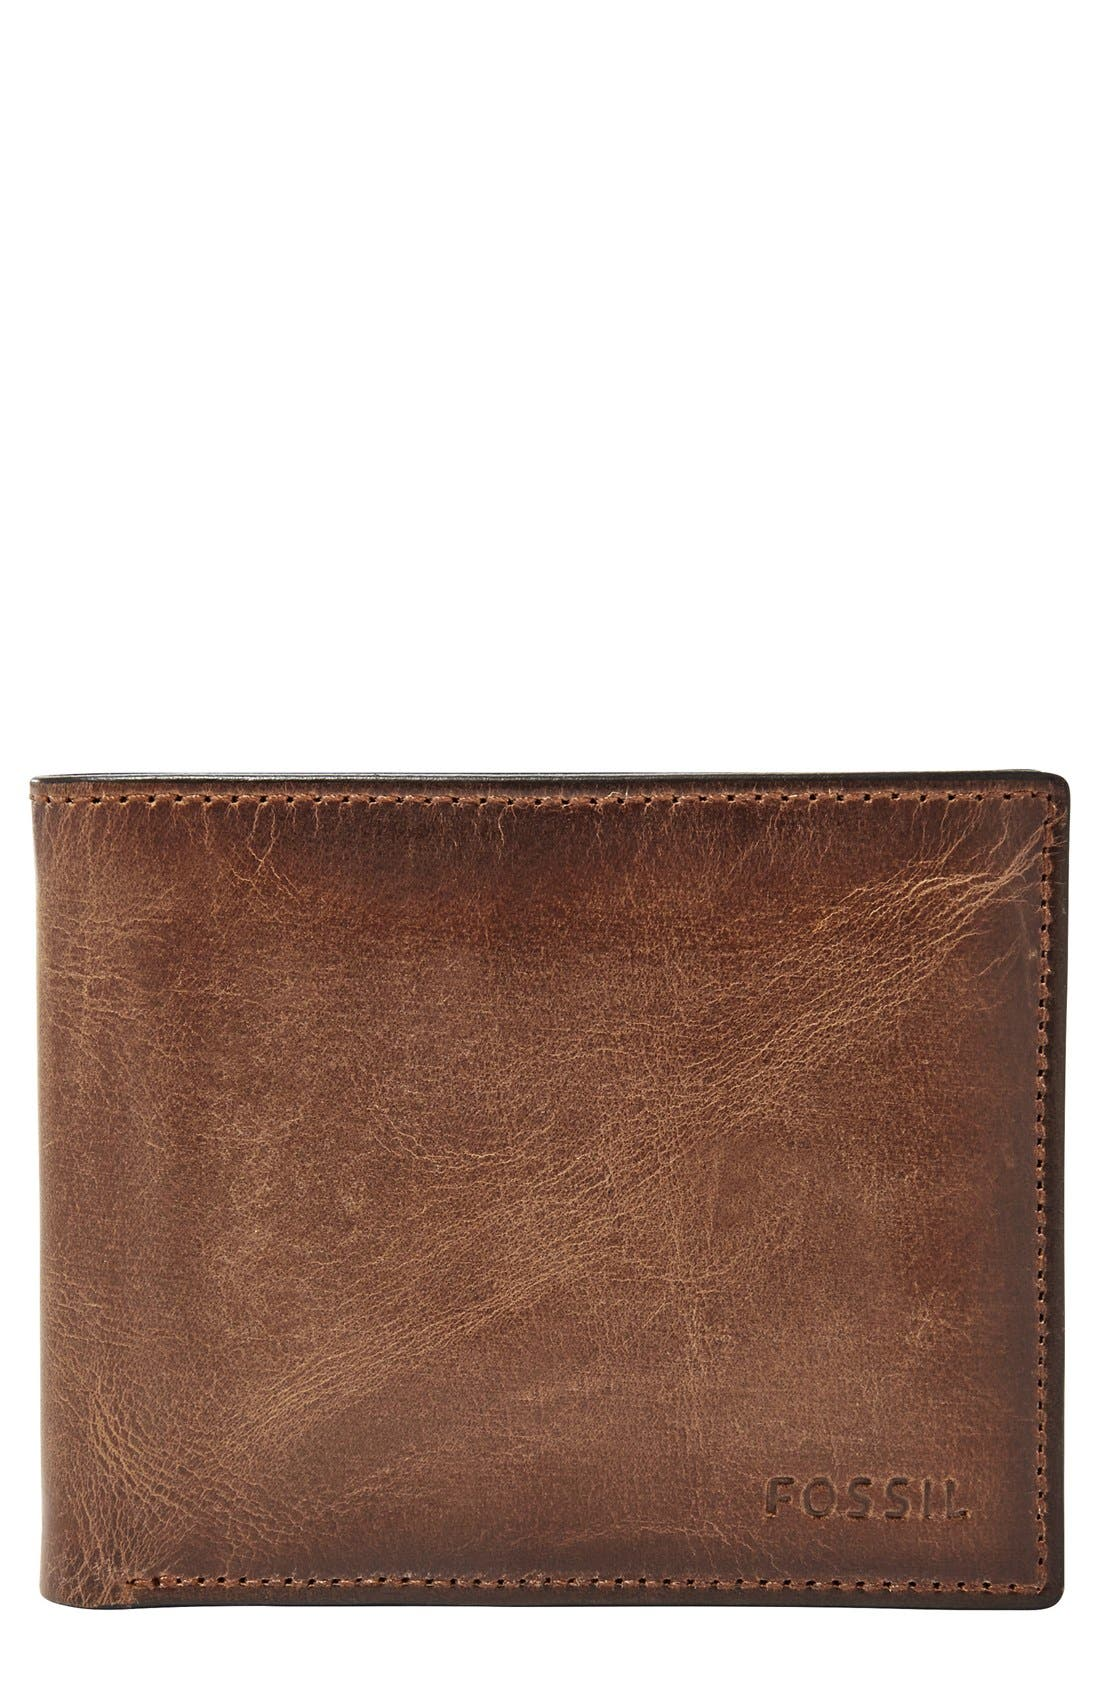 Main Image - Fossil 'Derrick' Leather Flip Trifold Wallet